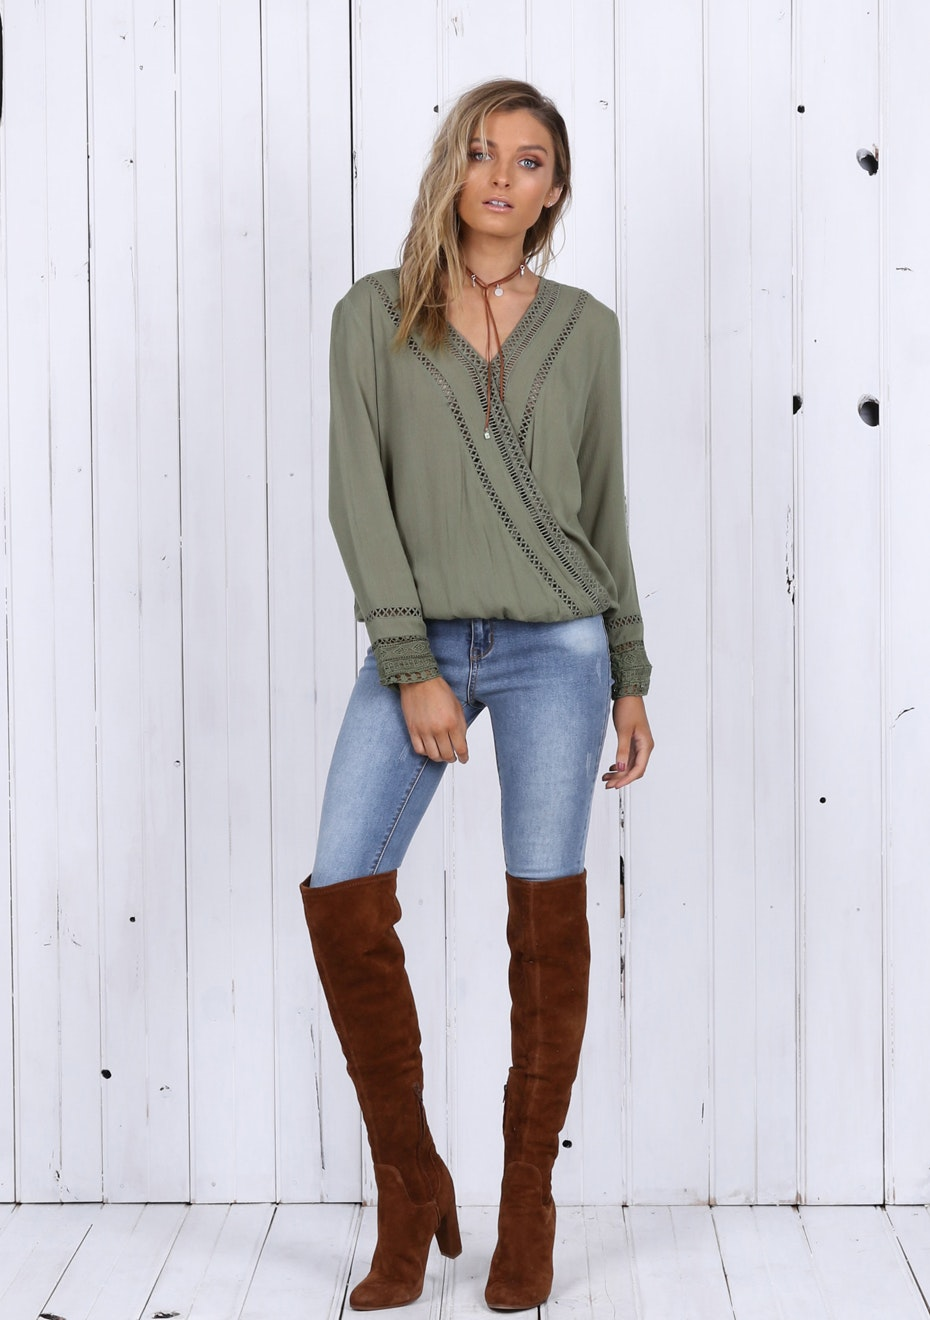 Madison - LUCILLE TOP - KHAKI